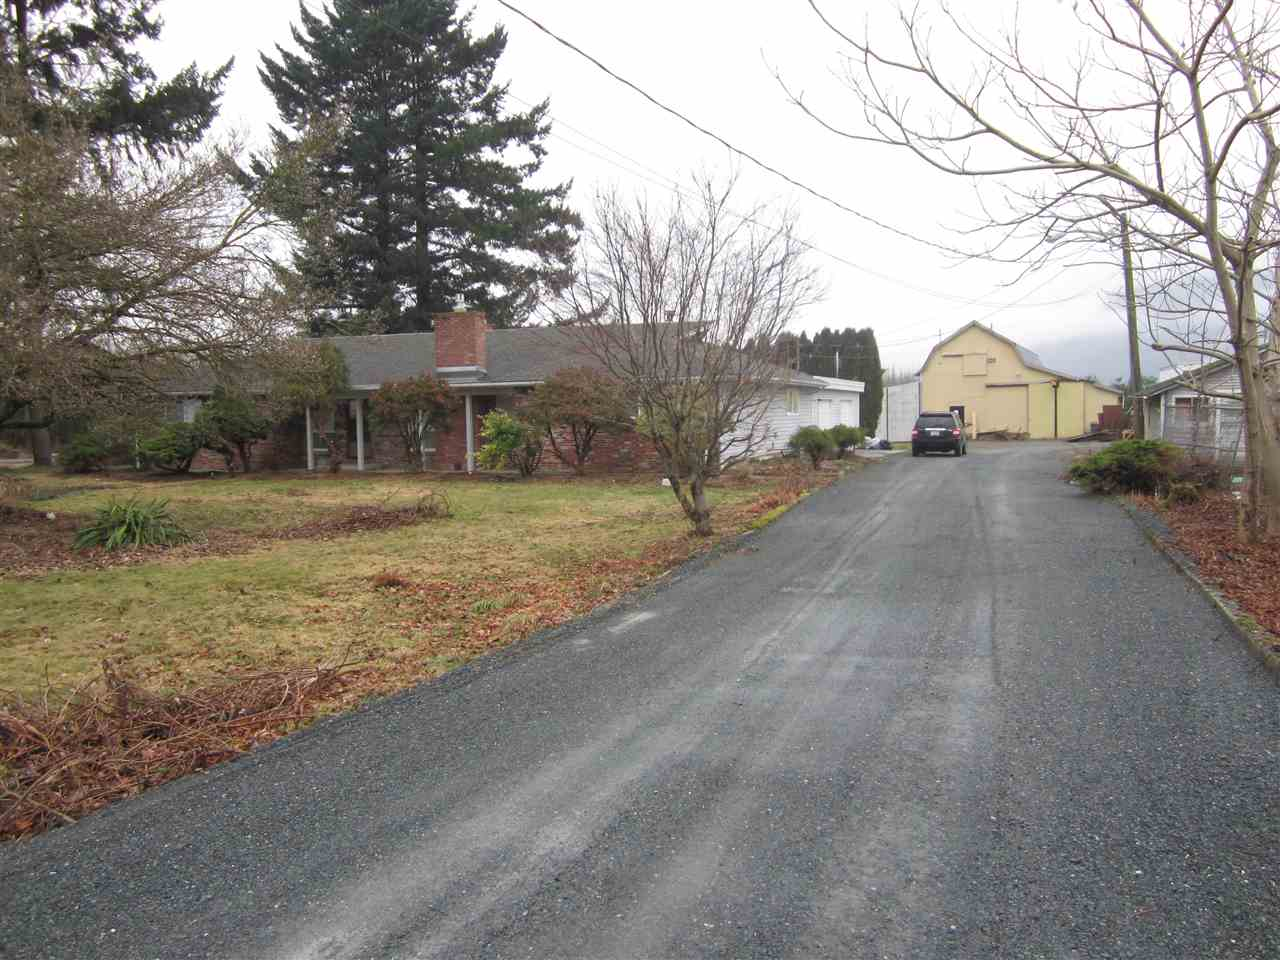 Very good income producing property on city water! 11.83 acres w/ many options acres, 8 acres on lease, 2 acres nut trees. 2208 sq. ft. rancher home on crawl space w/ 3 bdrms, 2 full baths, family rm, rec rm, big laundry. 2 f/p, H/W heat, double garage. Detached 39' x 26' triple garage, 12' x 9' room, 60' x 30' shop w/ 18' ceiling & 16' door, 61' x 37' hip hop barn, 36' x 26' shop, all w/ high doors and 220 power. Very good tenants would like to stay. Call for more information.